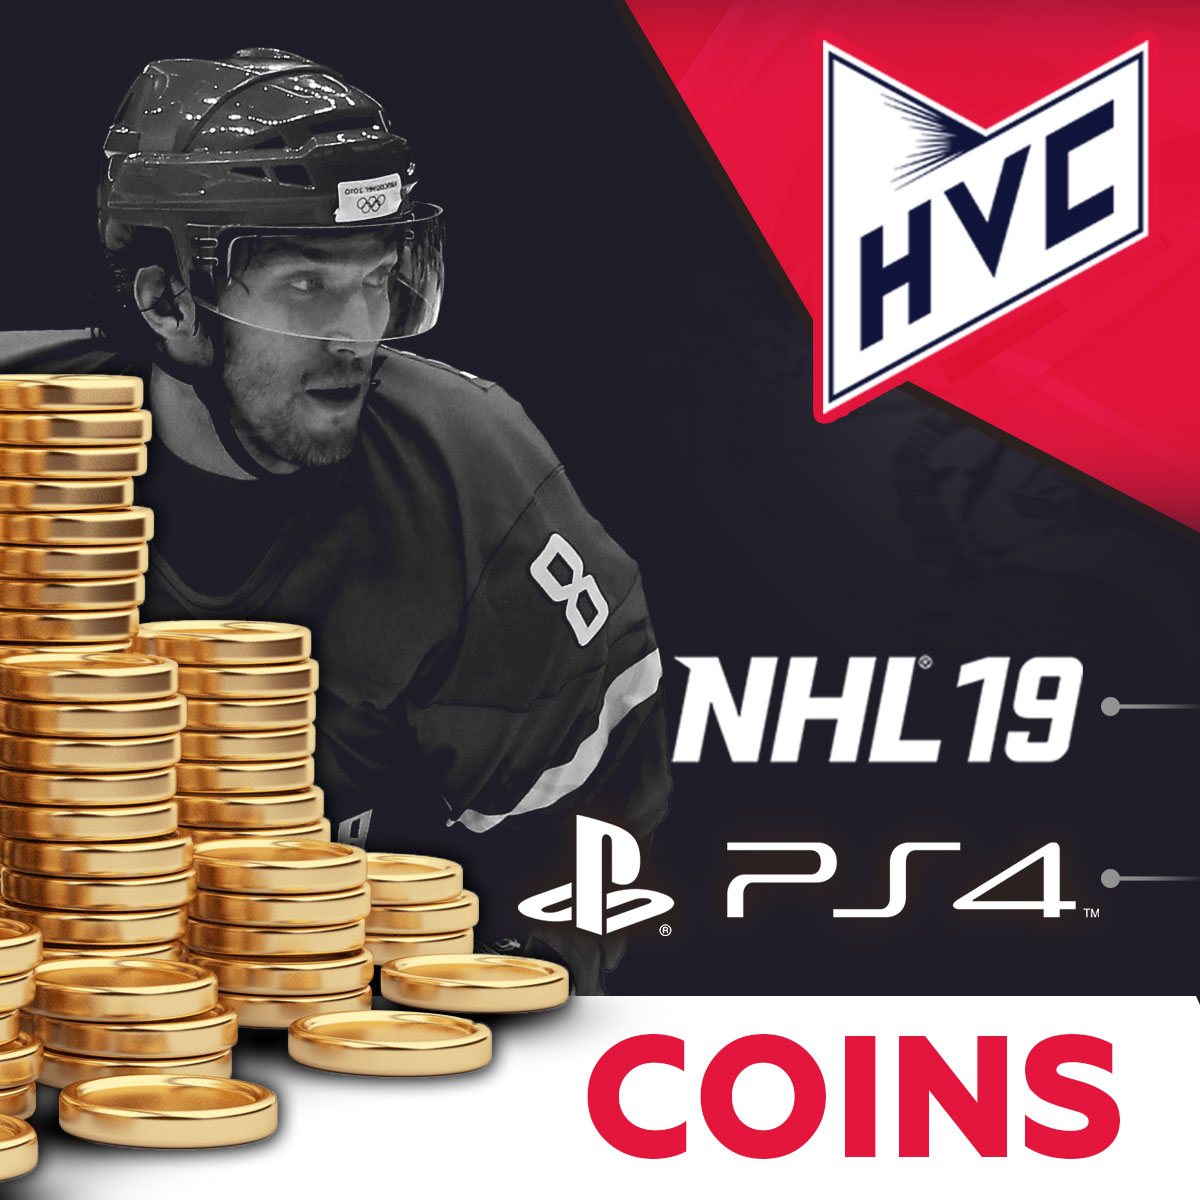 COINS NHL 19 PS4 HUT Coins | Low Price | Fast | + 5%